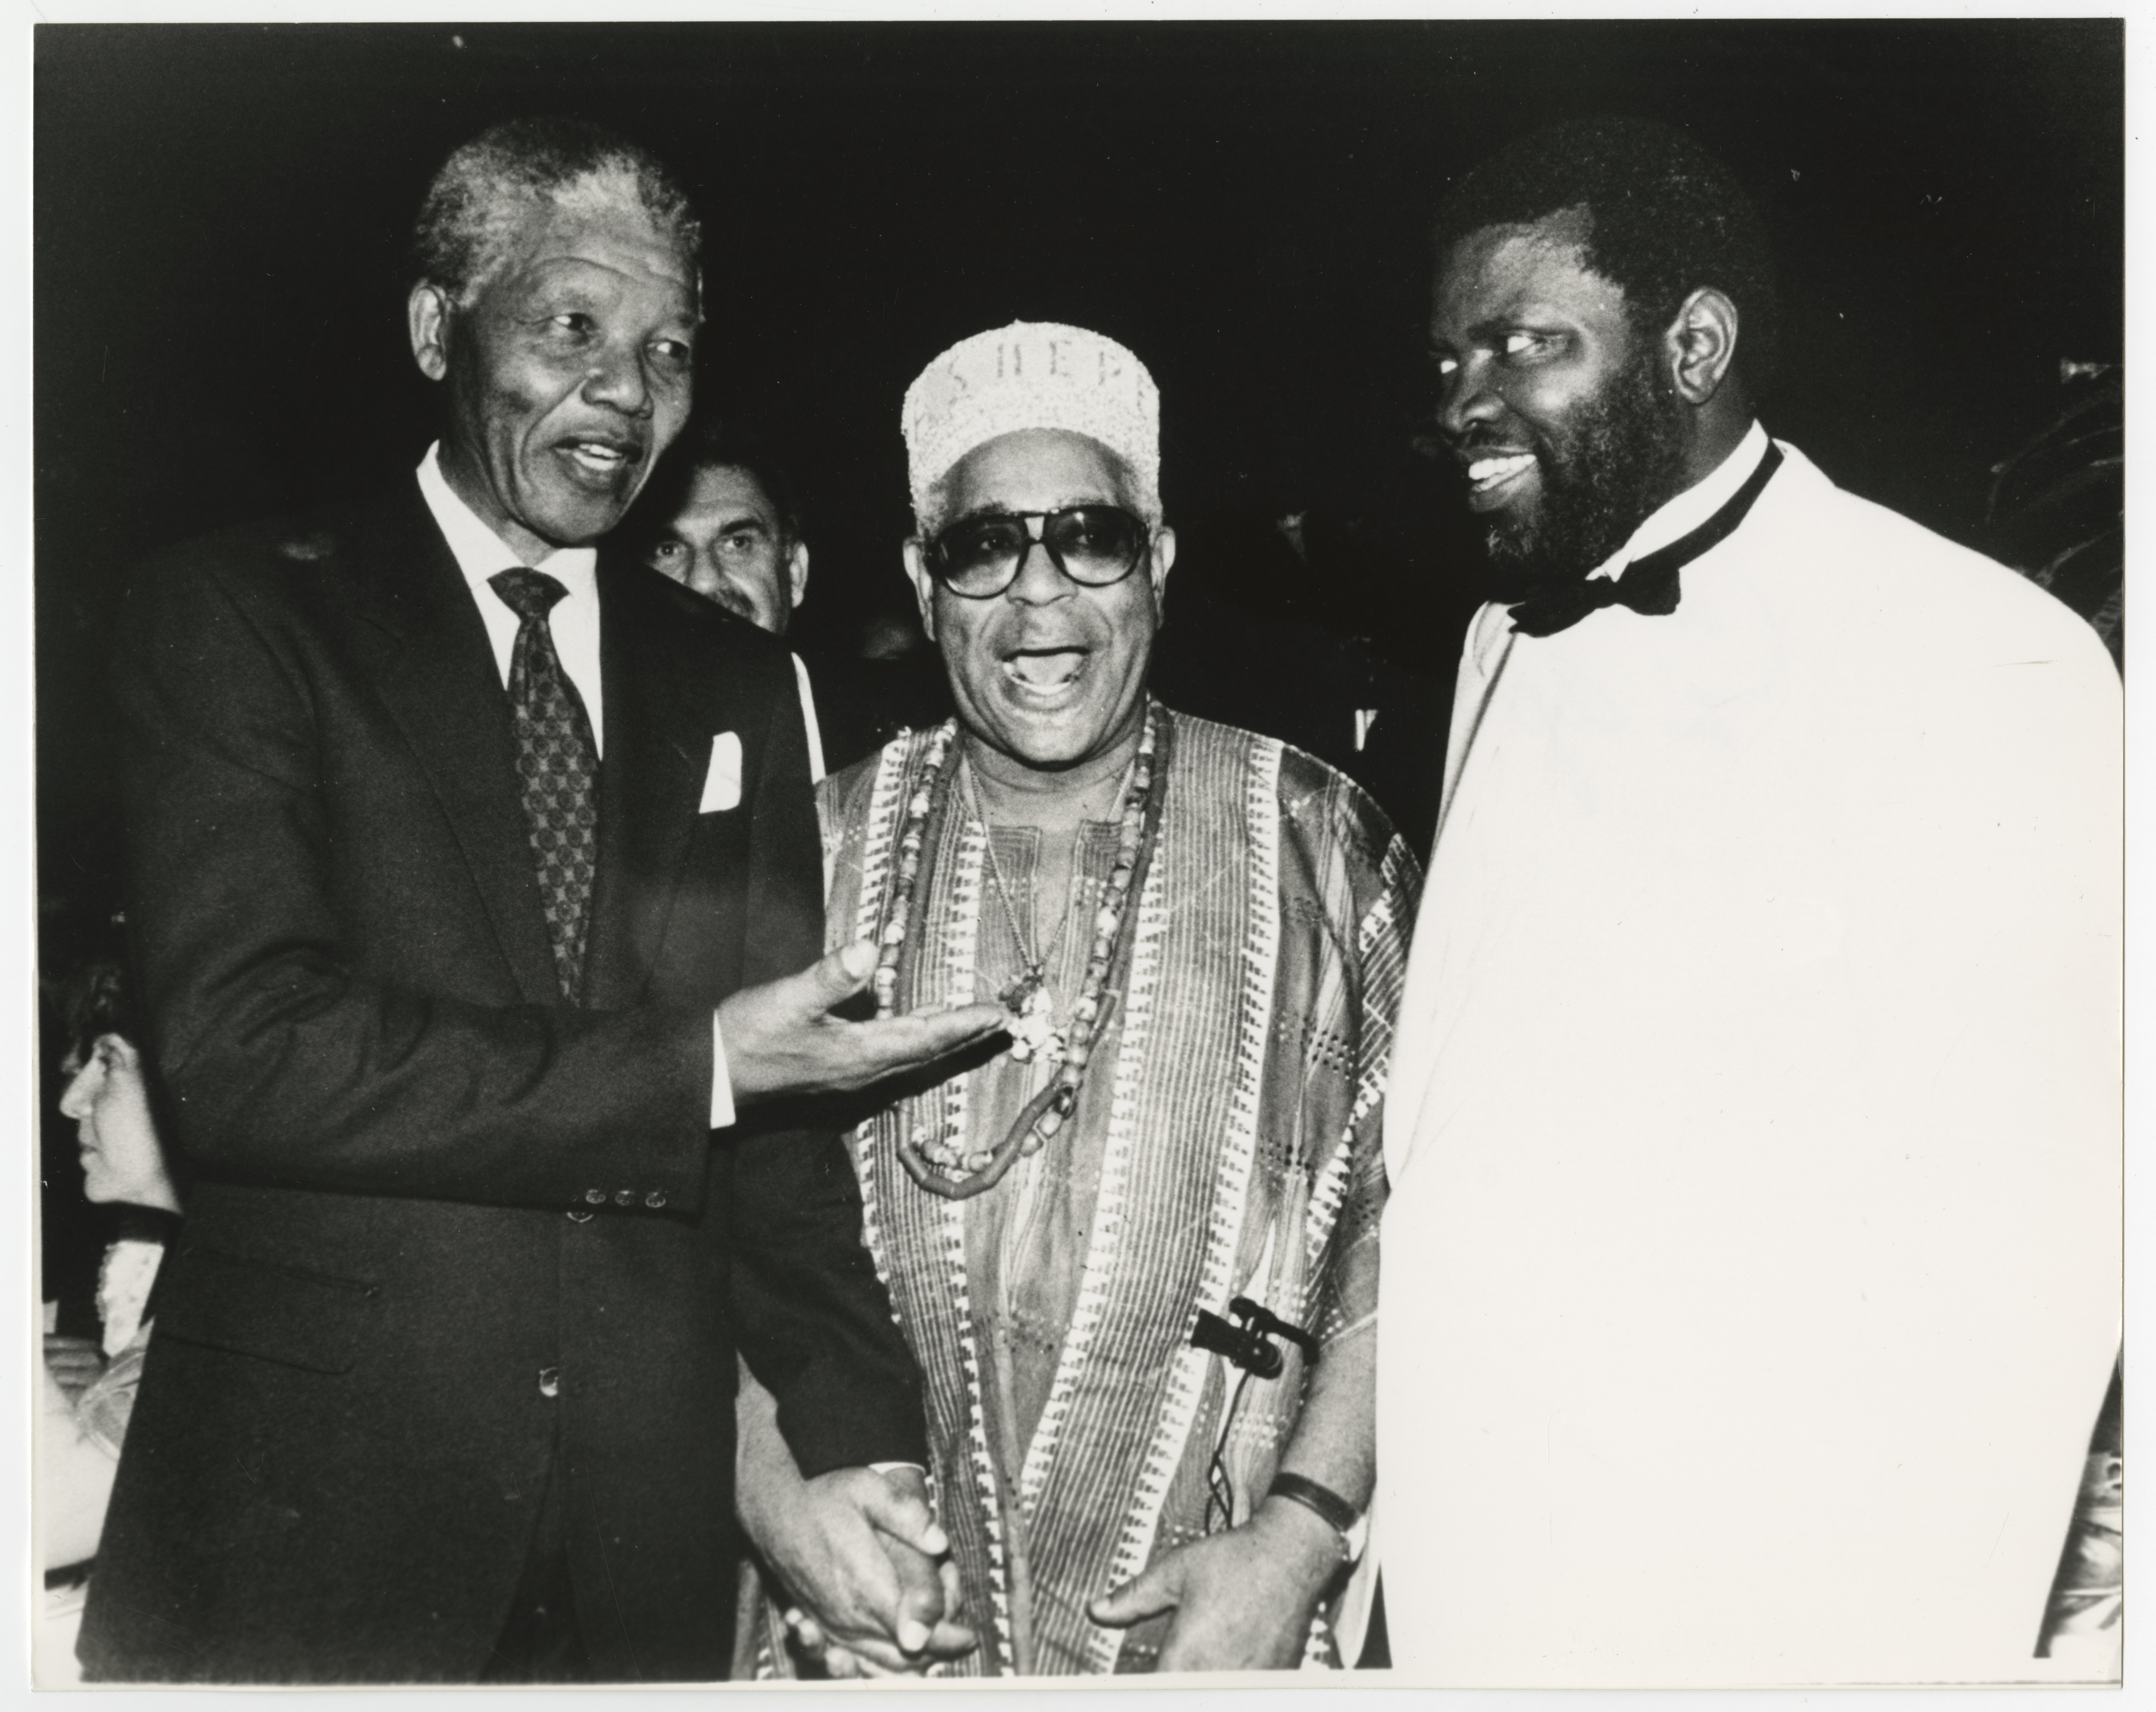 Nelson Mandela, Dizzy Gillespie and Hage Geingob pose together in 1990.